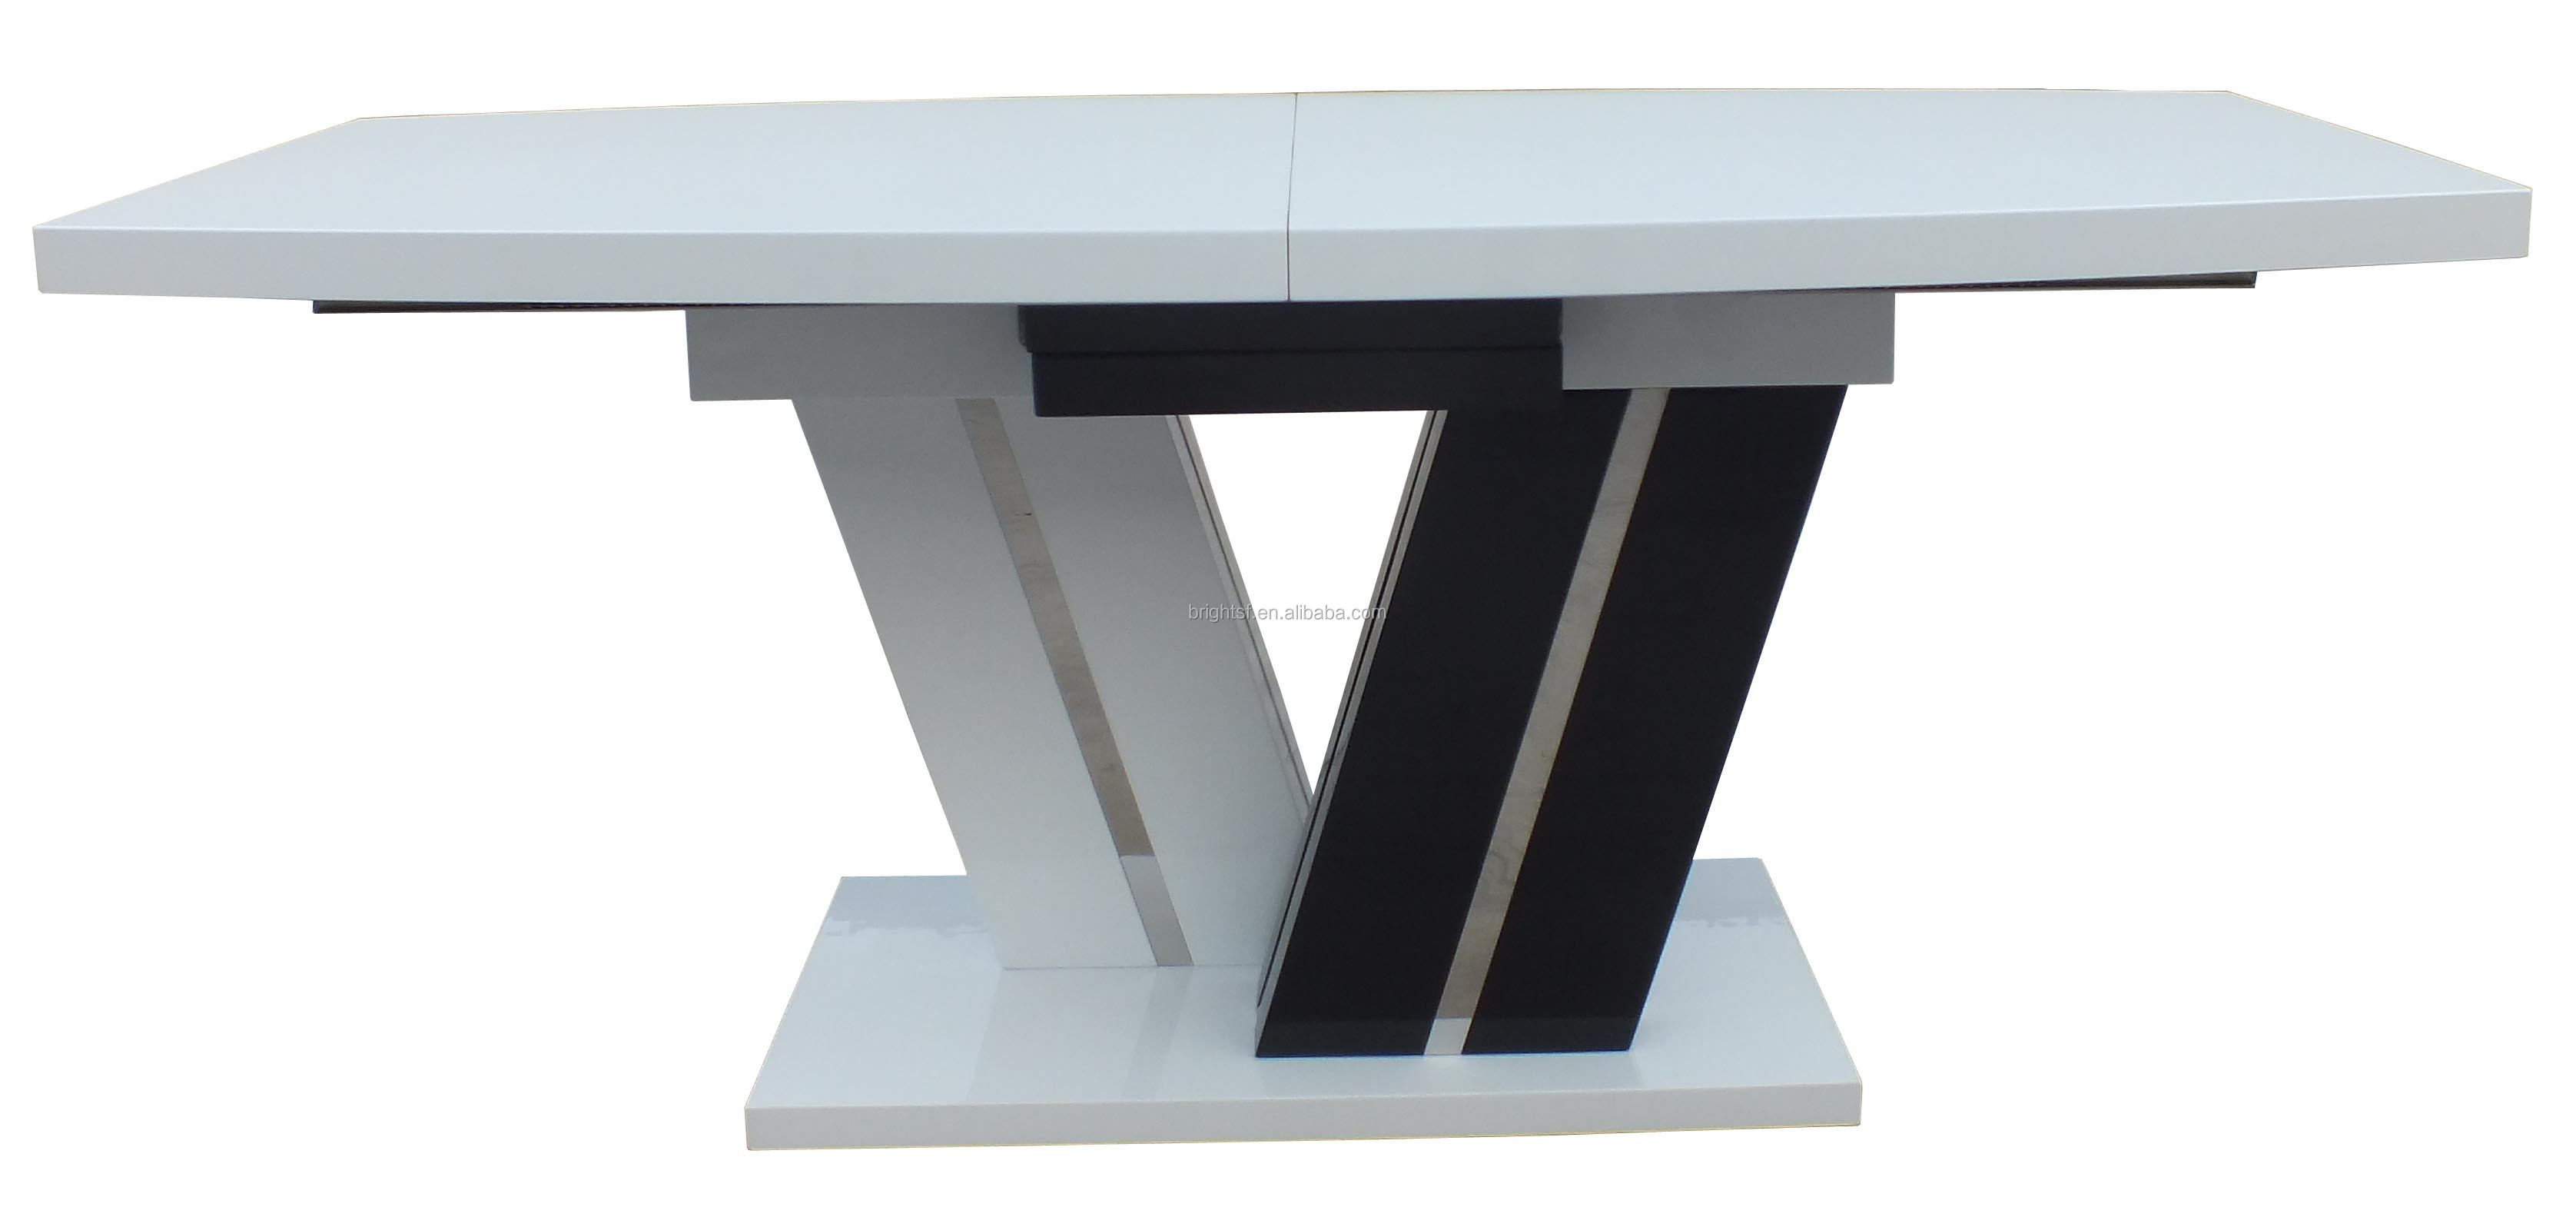 2015 Modern Folding MDF High Gloss White And Black Dining Table For Dining  Room